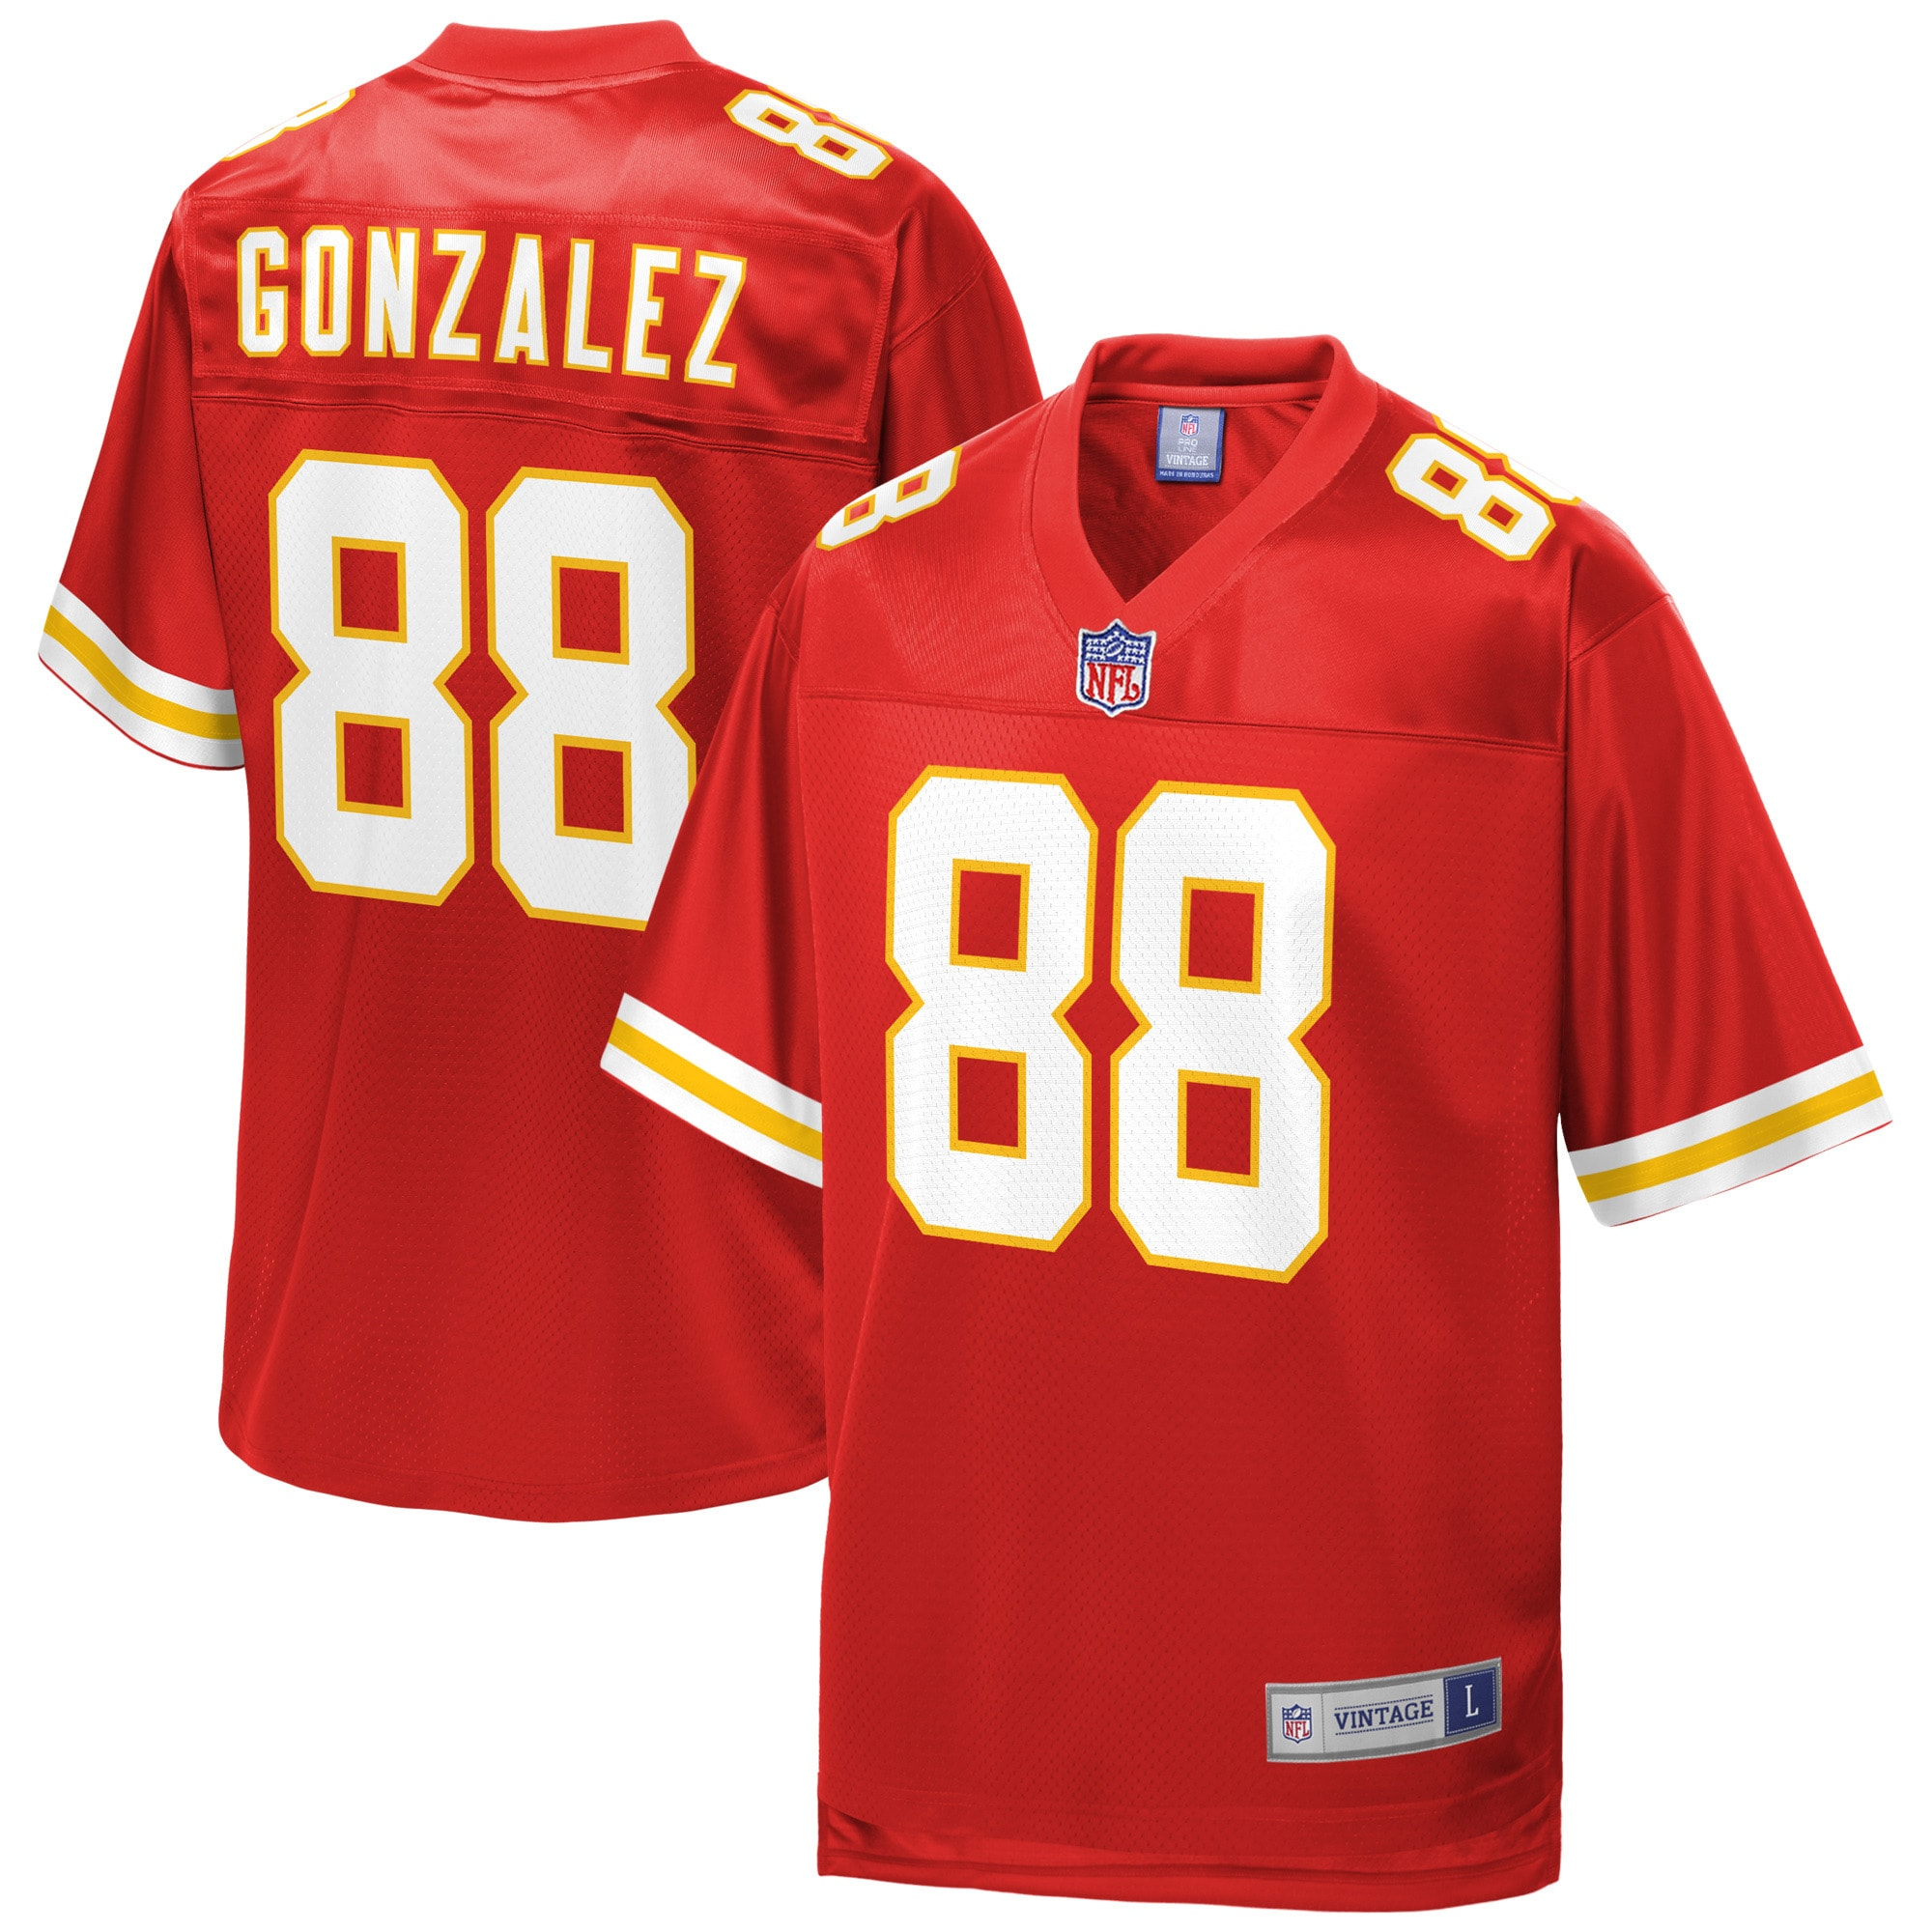 Tony Gonzalez Kansas City Chiefs NFL Pro Line Retired Player Replica Jersey - Red